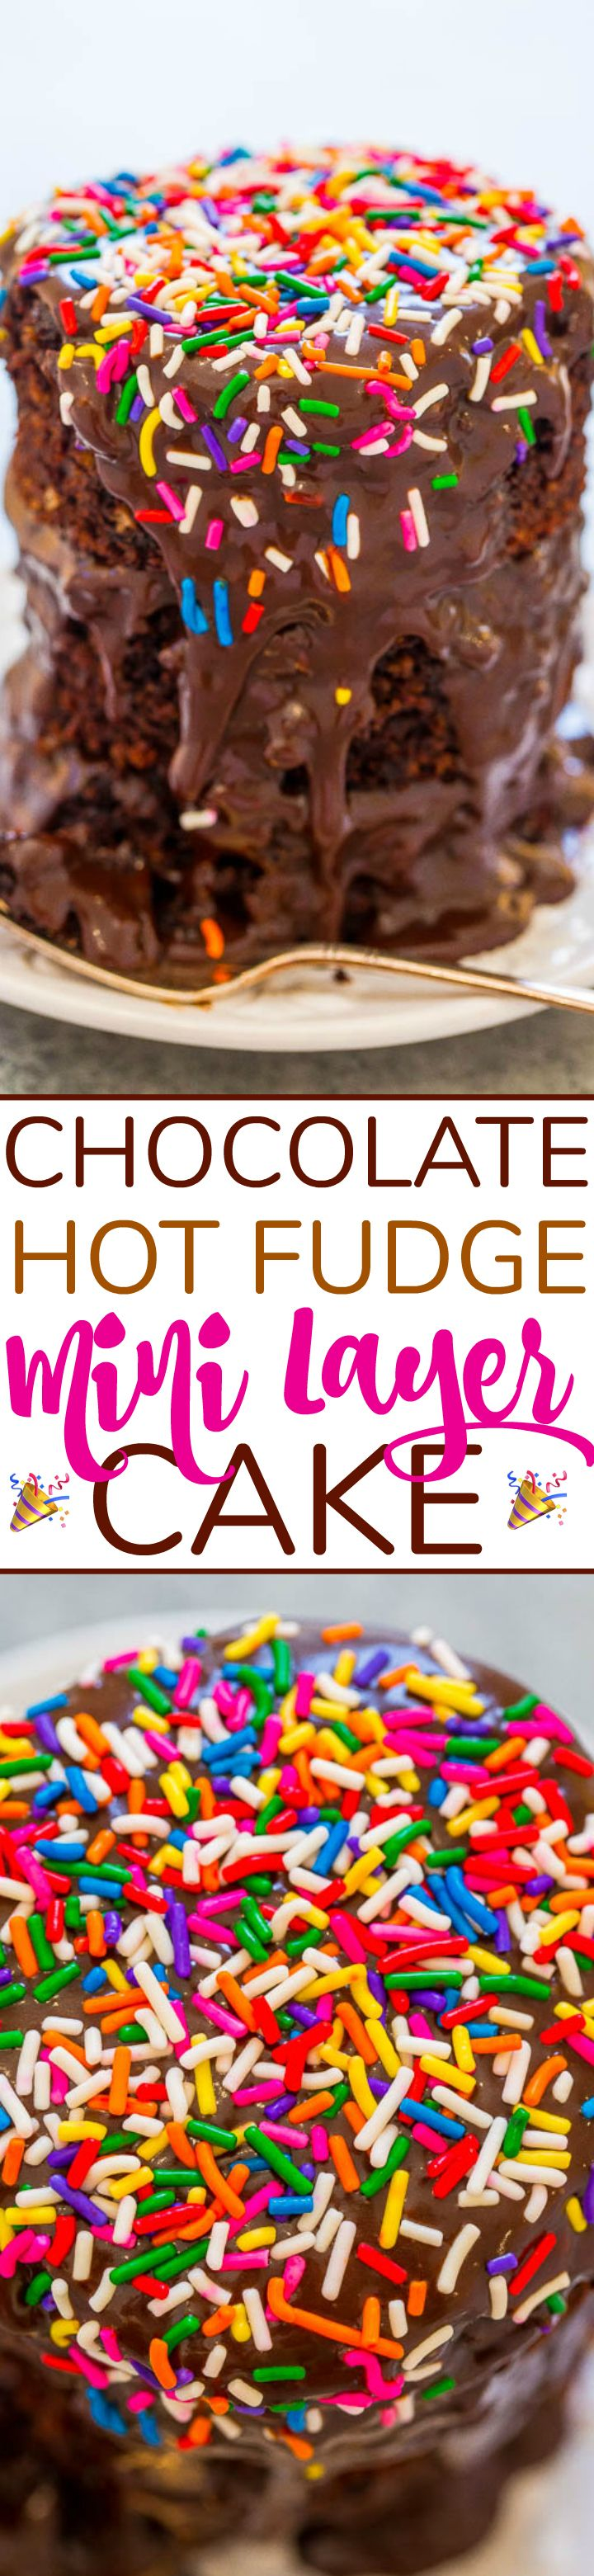 Chocolate Hot Fudge Mini Layer Cake - Rich, decadent, over-the-top fudgy cake that uses hot fudge instead of frosting!! You don't need special pans for this EASY, no-mixer, mini cake that's perfect for special events!!